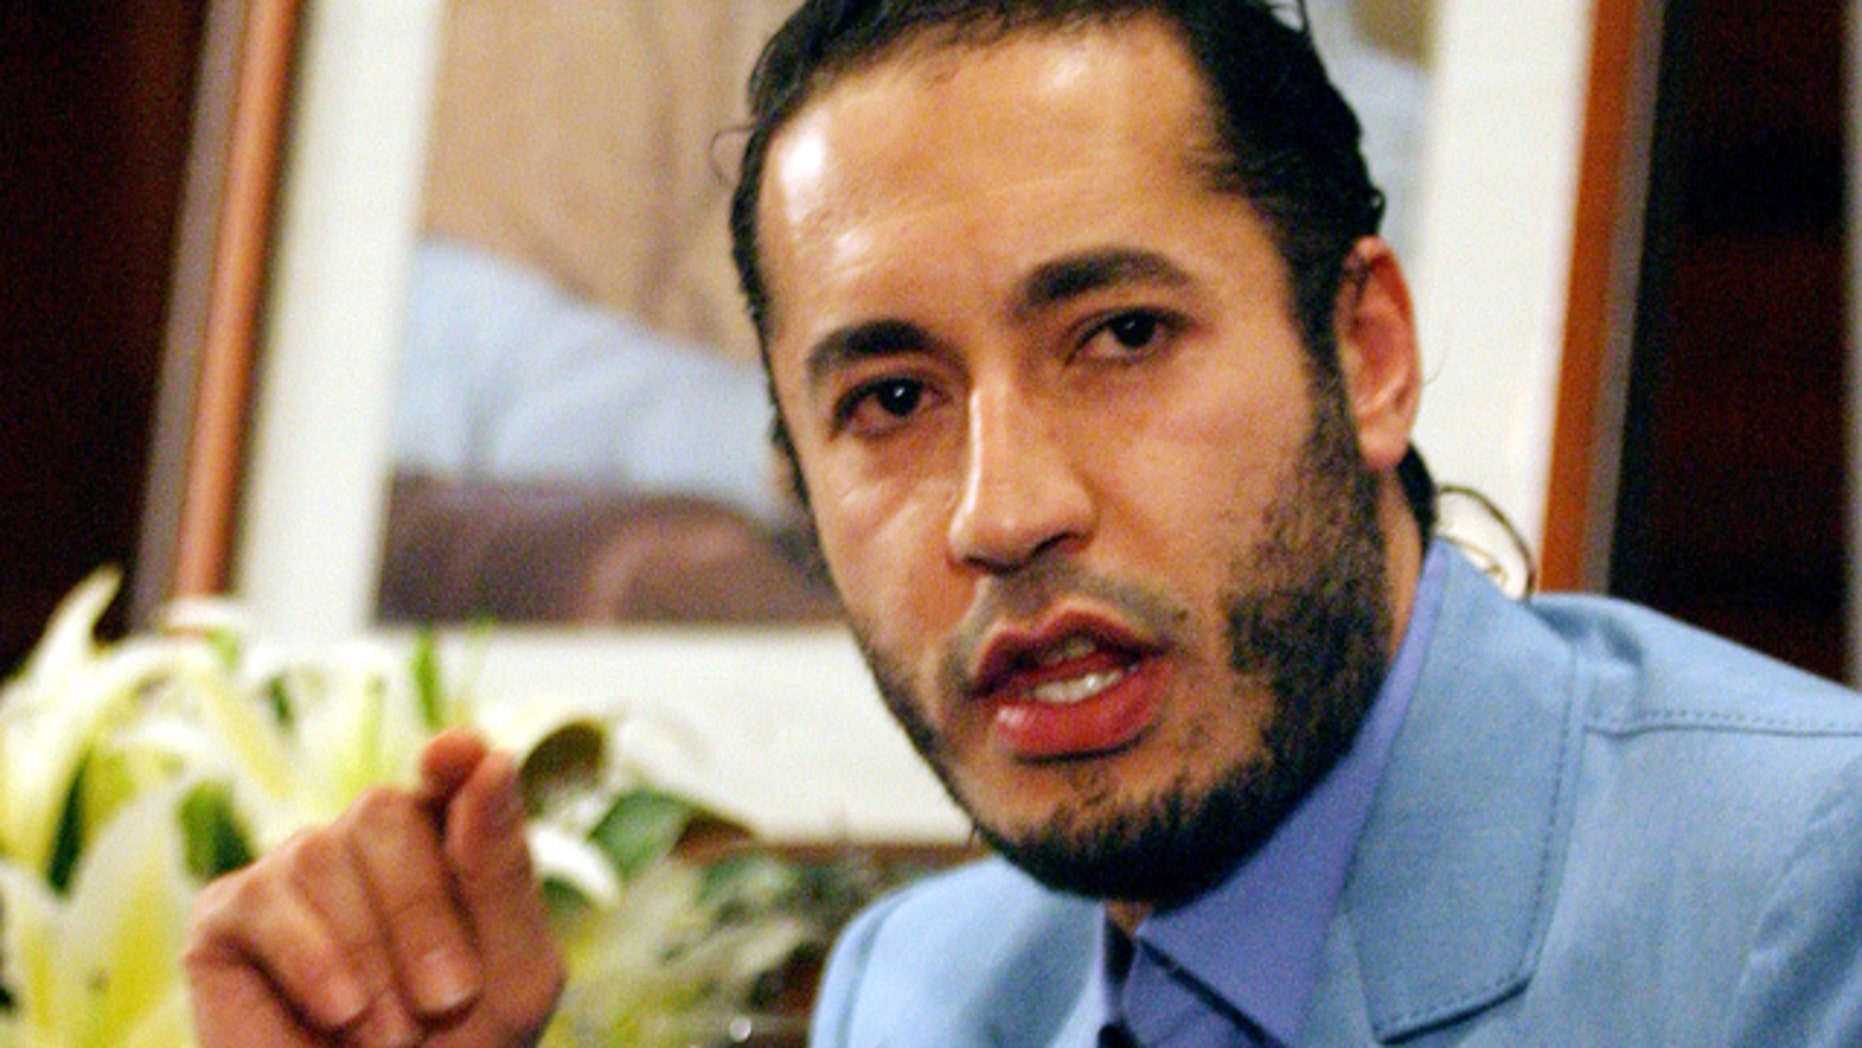 FILE 2005: Al-Saadi Qaddafi, the son of Muammar Qaddafi, answers a question during a press conference in Sydney.